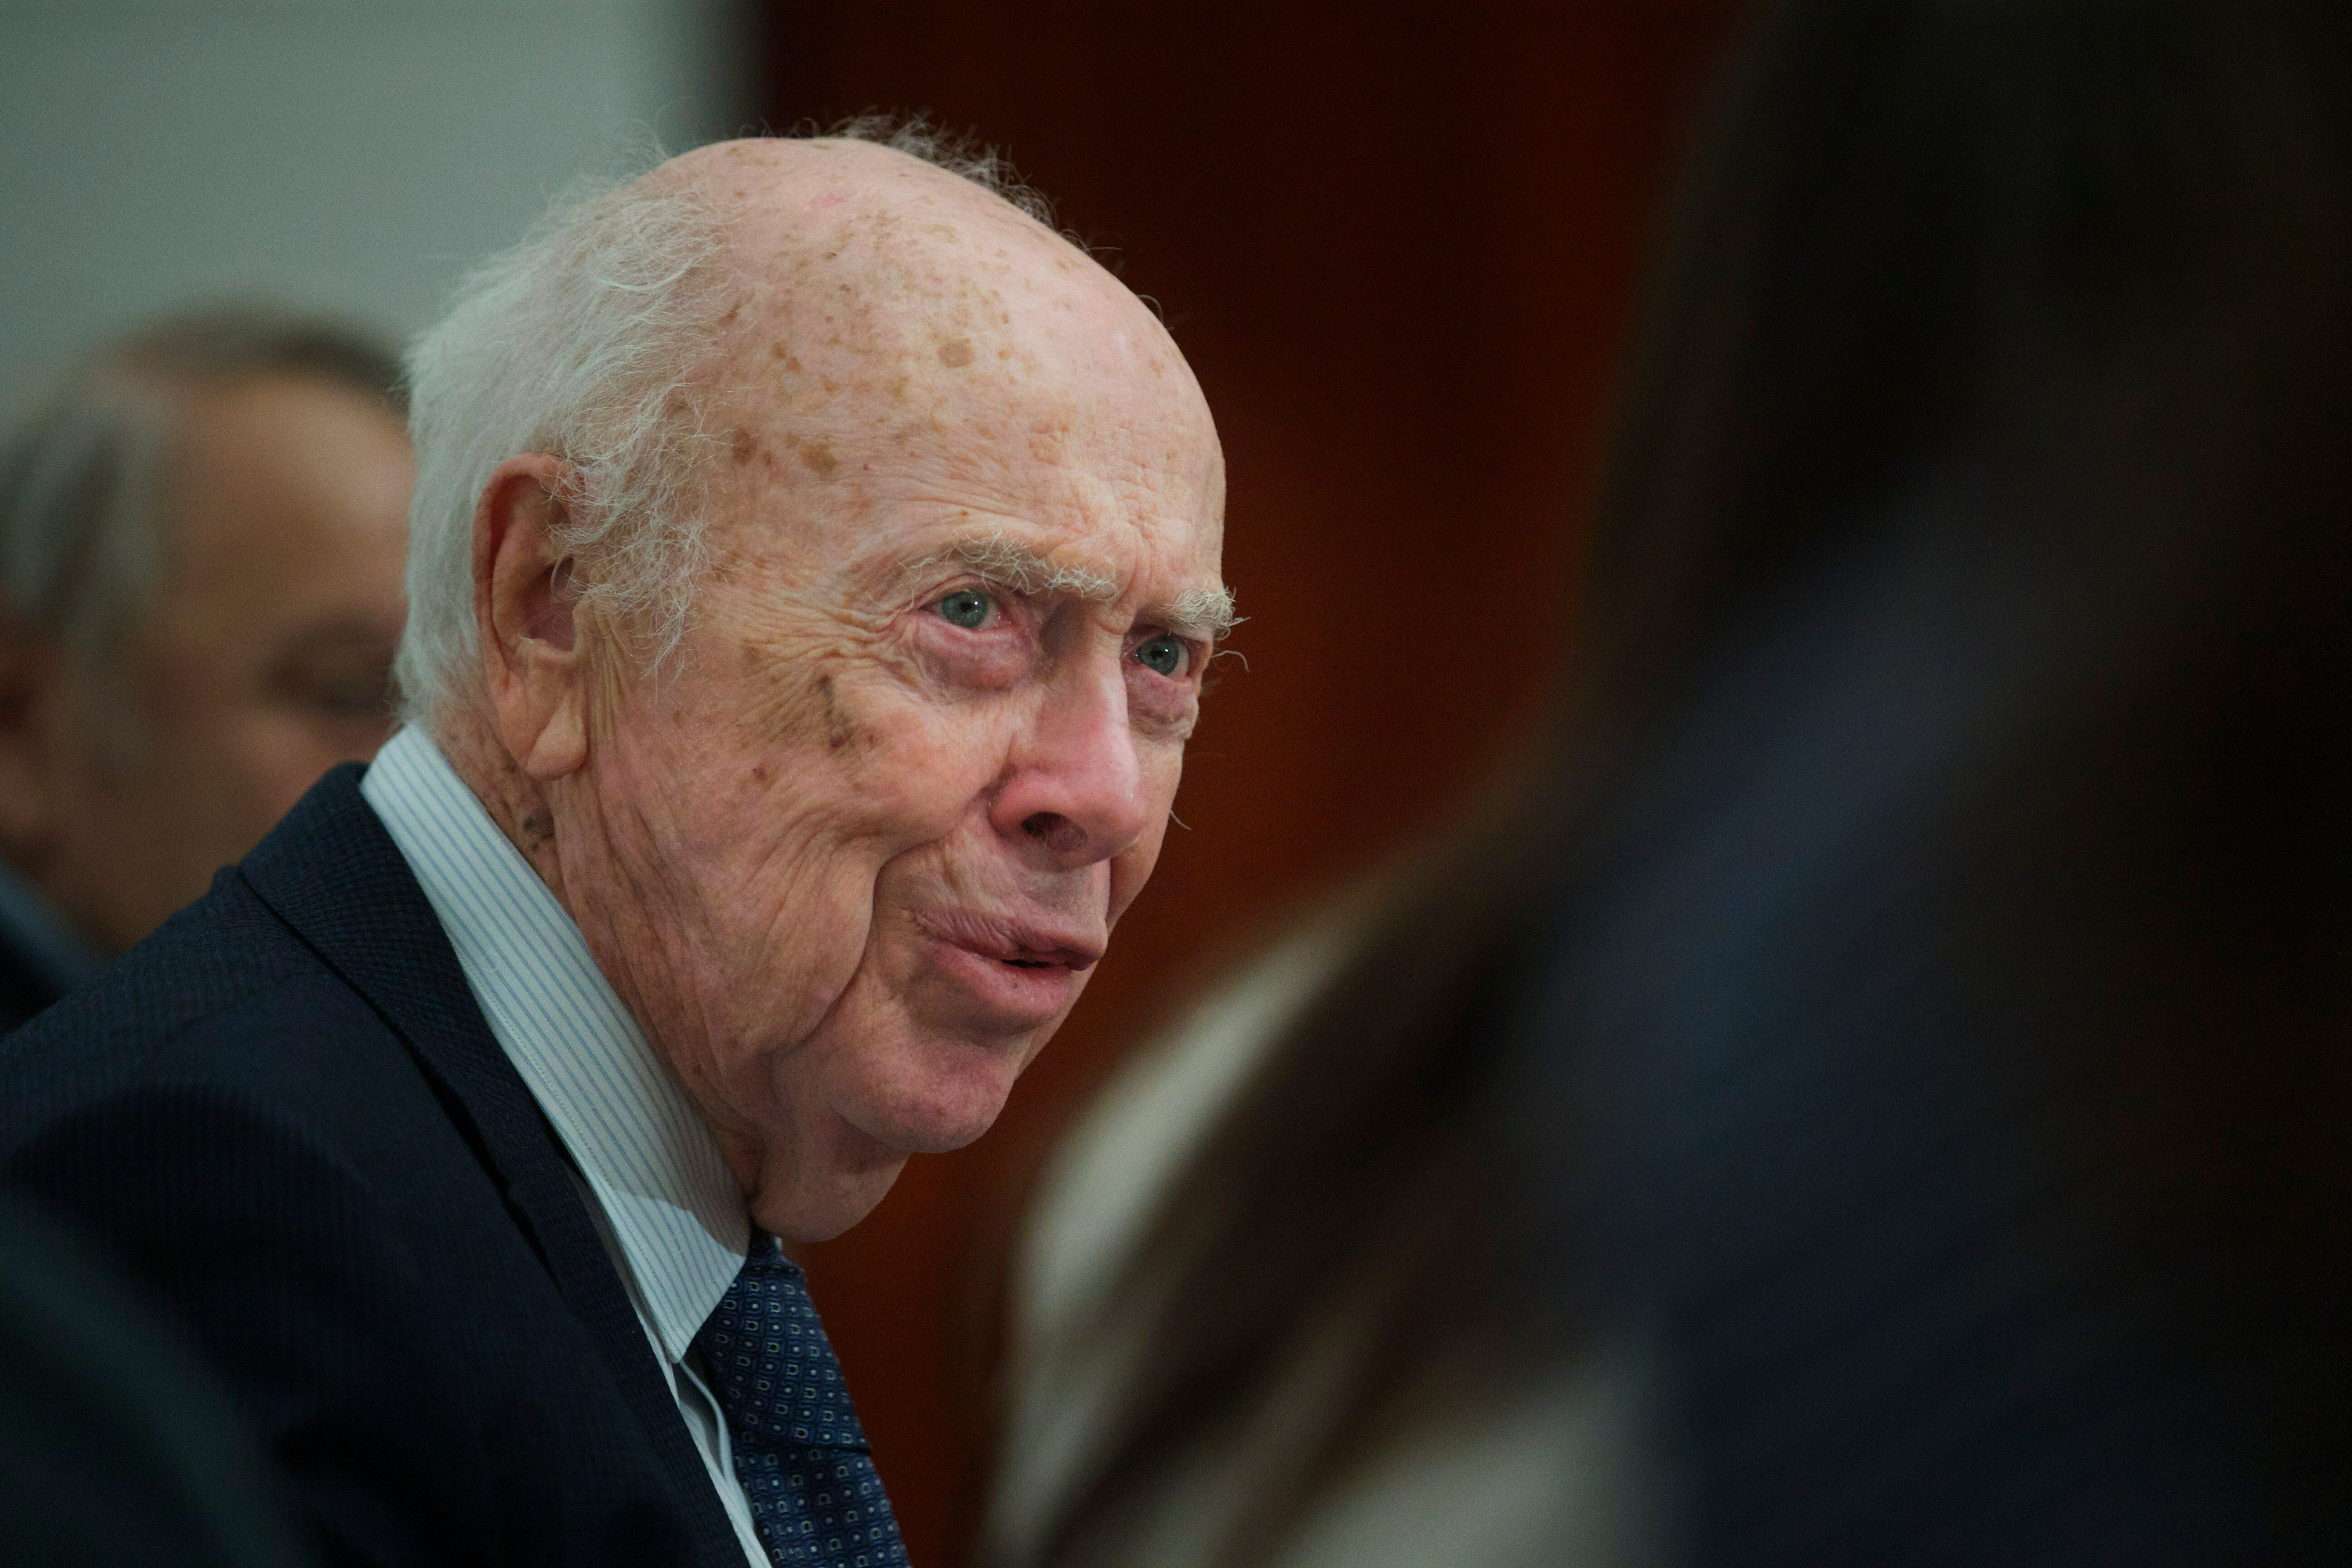 Nobel Scientist James Watson Stripped Of Titles For 'Reprehensible' Race